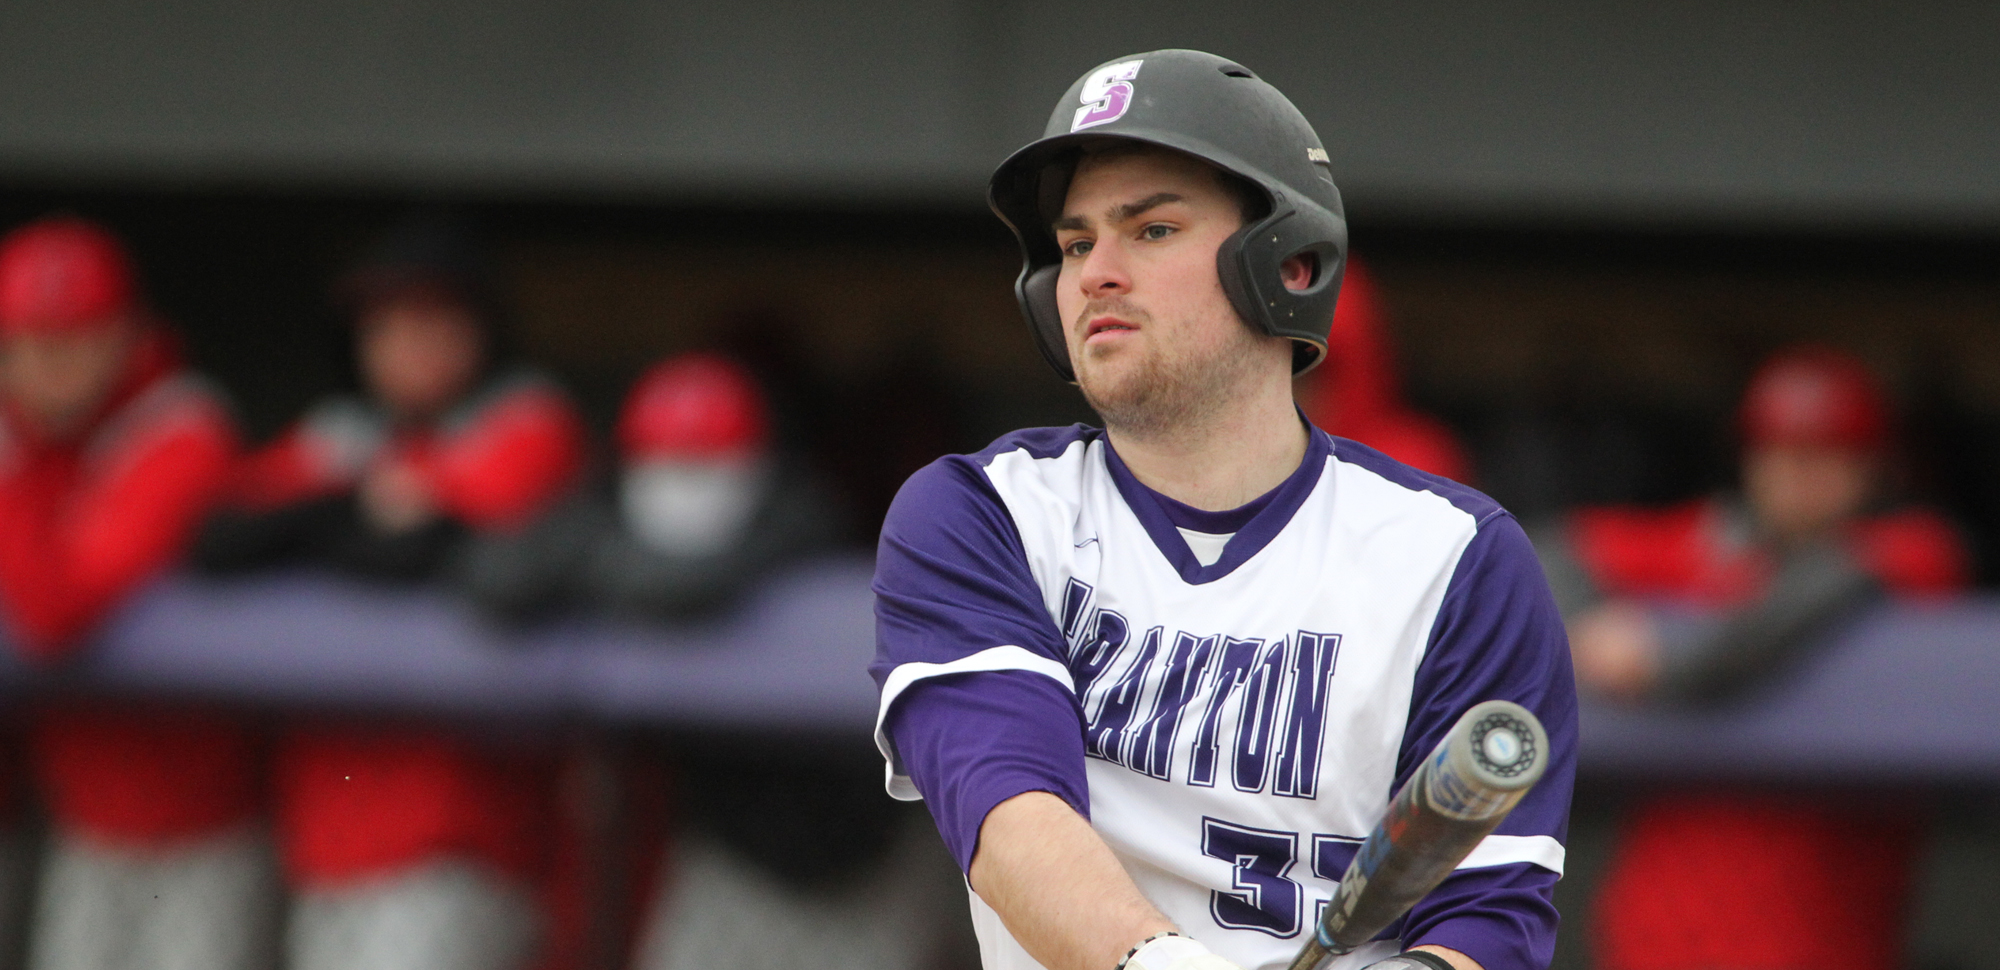 Senior Ian McIntosh went 2-for-4 with two doubles and scored a pair of runs in Scranton's loss to Eastern Connecticut State. © Photo by Timothy R. Dougherty / doubleeaglephotography.com